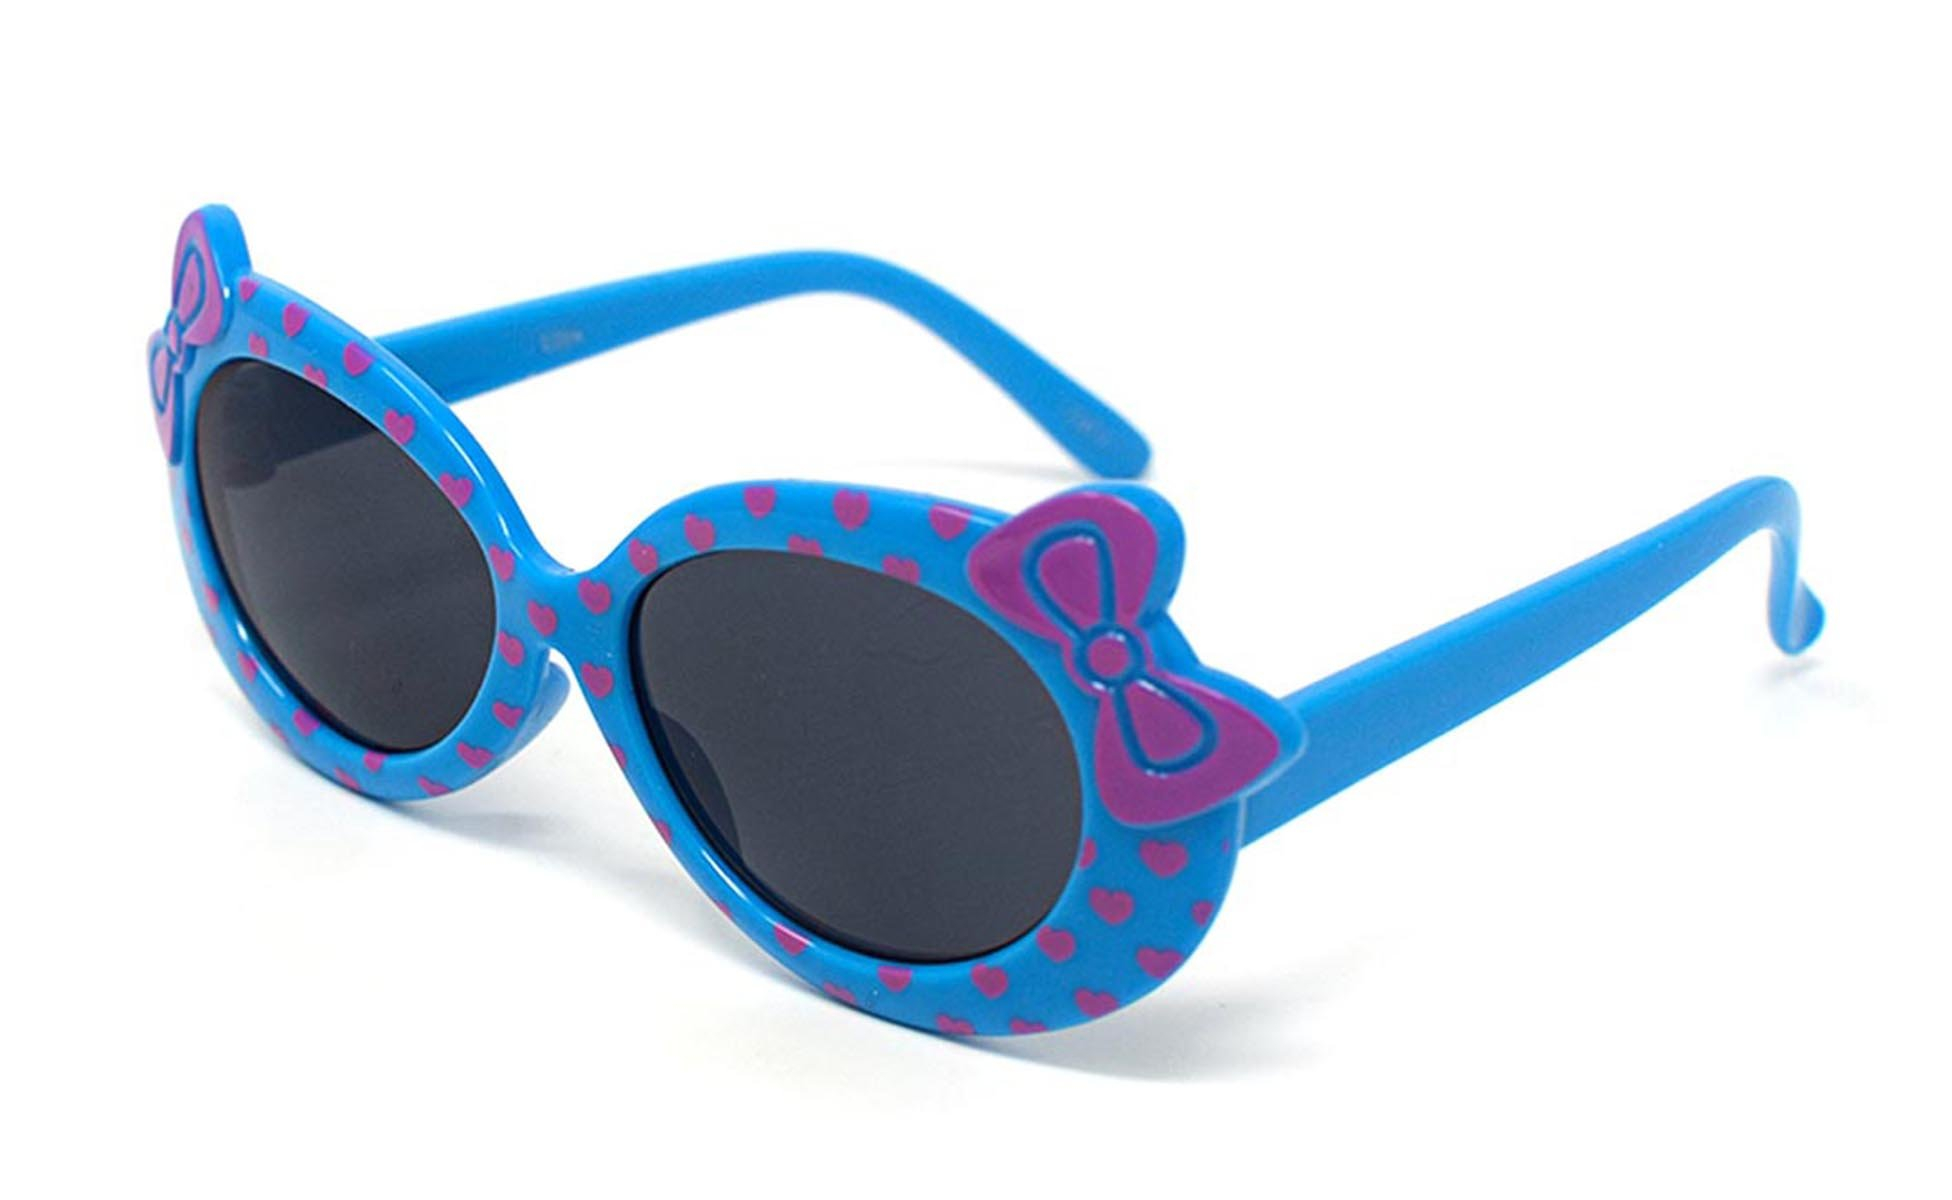 4 x Blue Coloured Childrens Kids Girls Stylish Cute Designer Style Sunglasses with a Bow and heart Style UV400